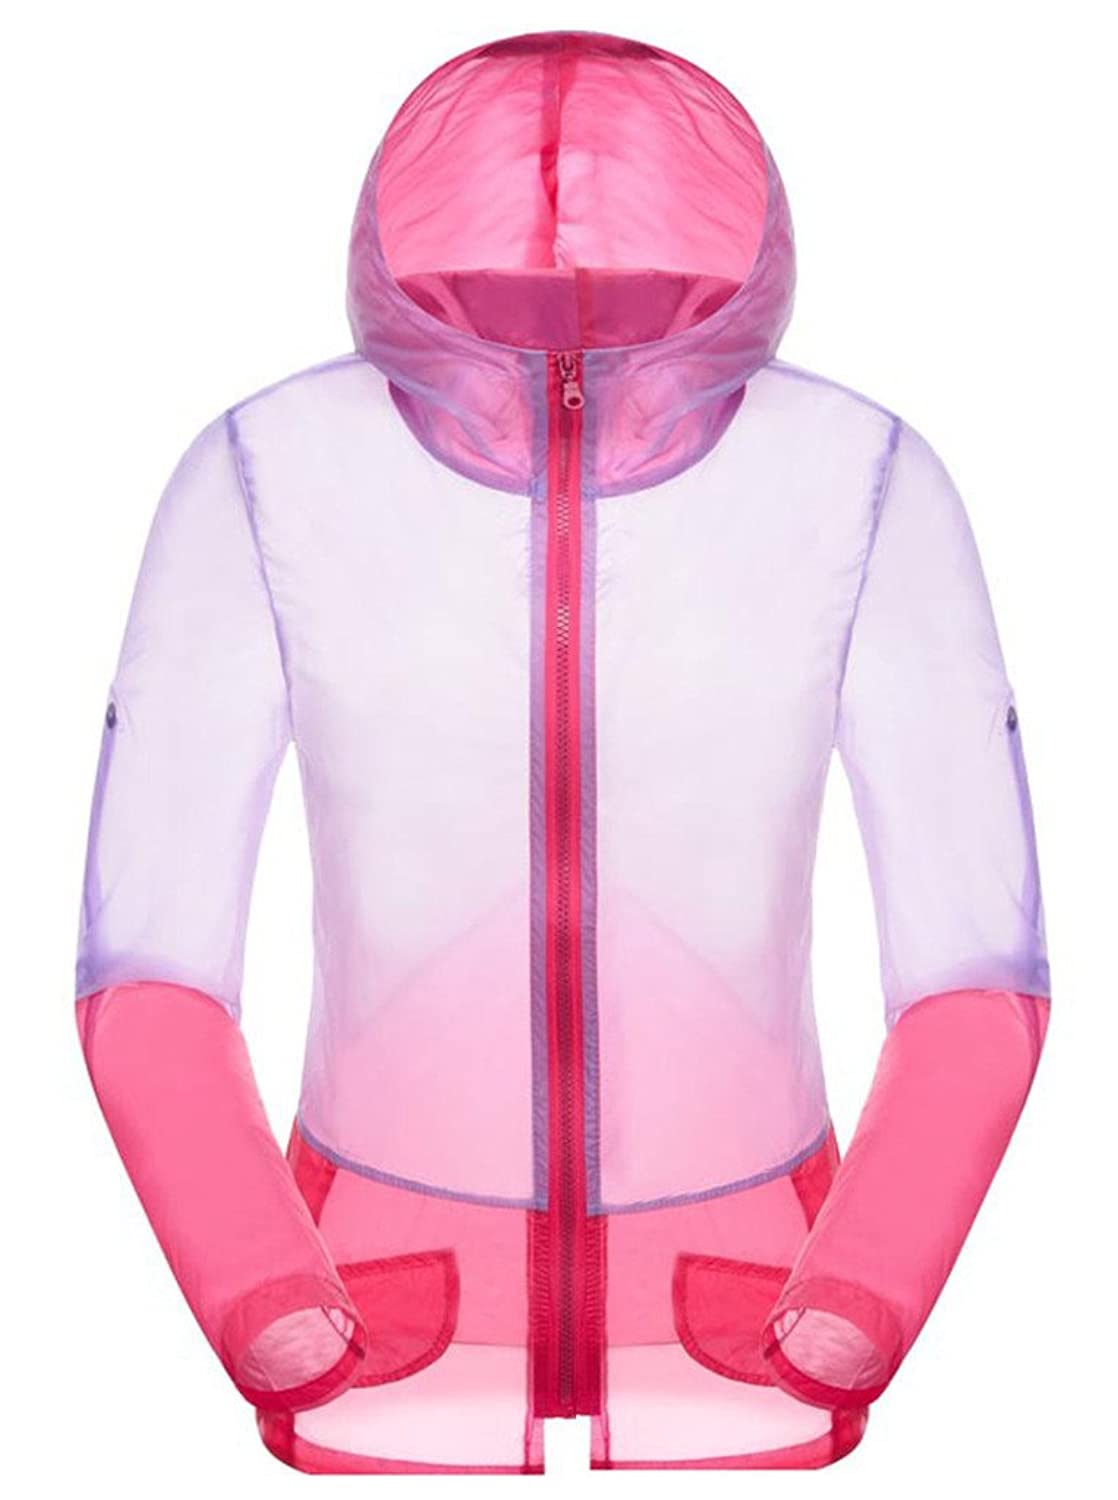 Hotly Womens Colorful Super Lightweight Jacket Windproof Skin Coat-Sun Protection